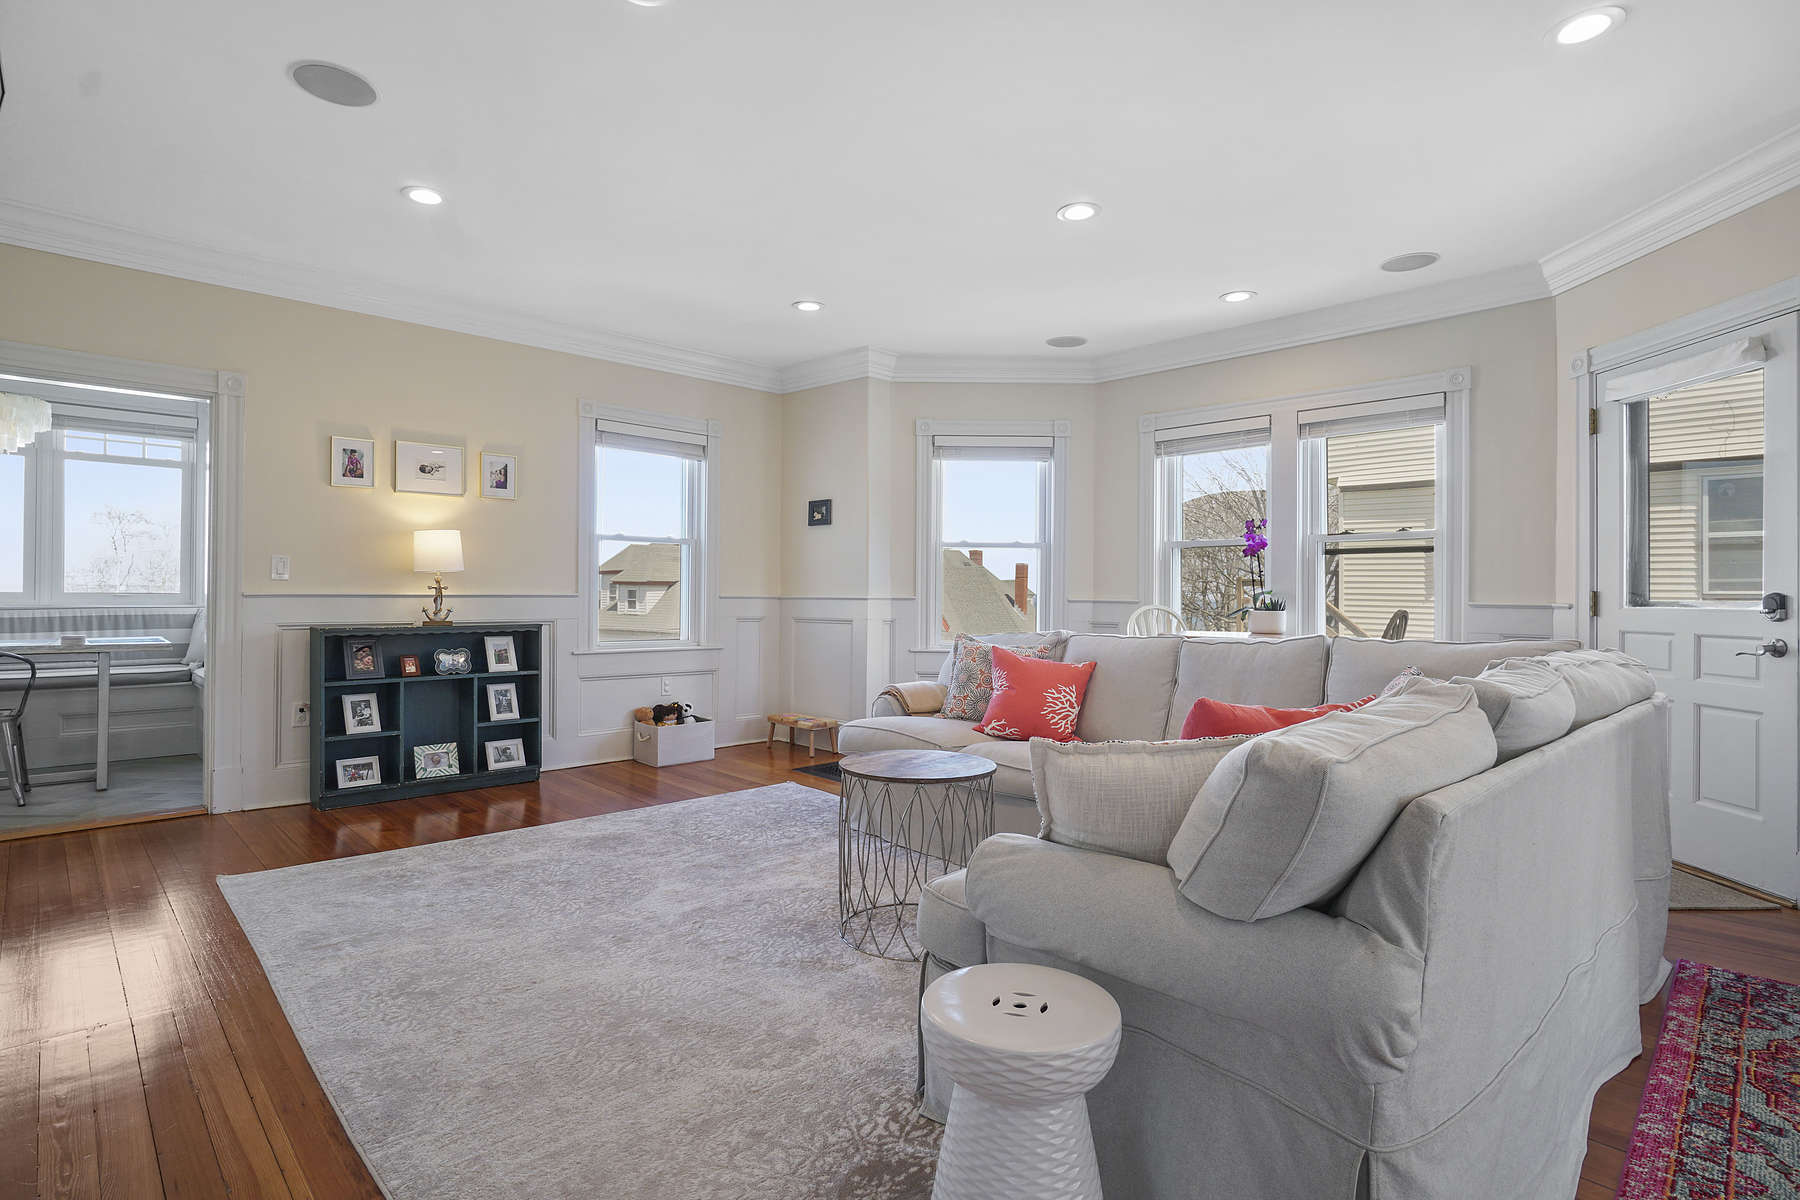 Single Family Home for Active at Beautifully Updated Victorian With Ocean Views 44 Prospect Ave Winthrop, Massachusetts 02152 United States